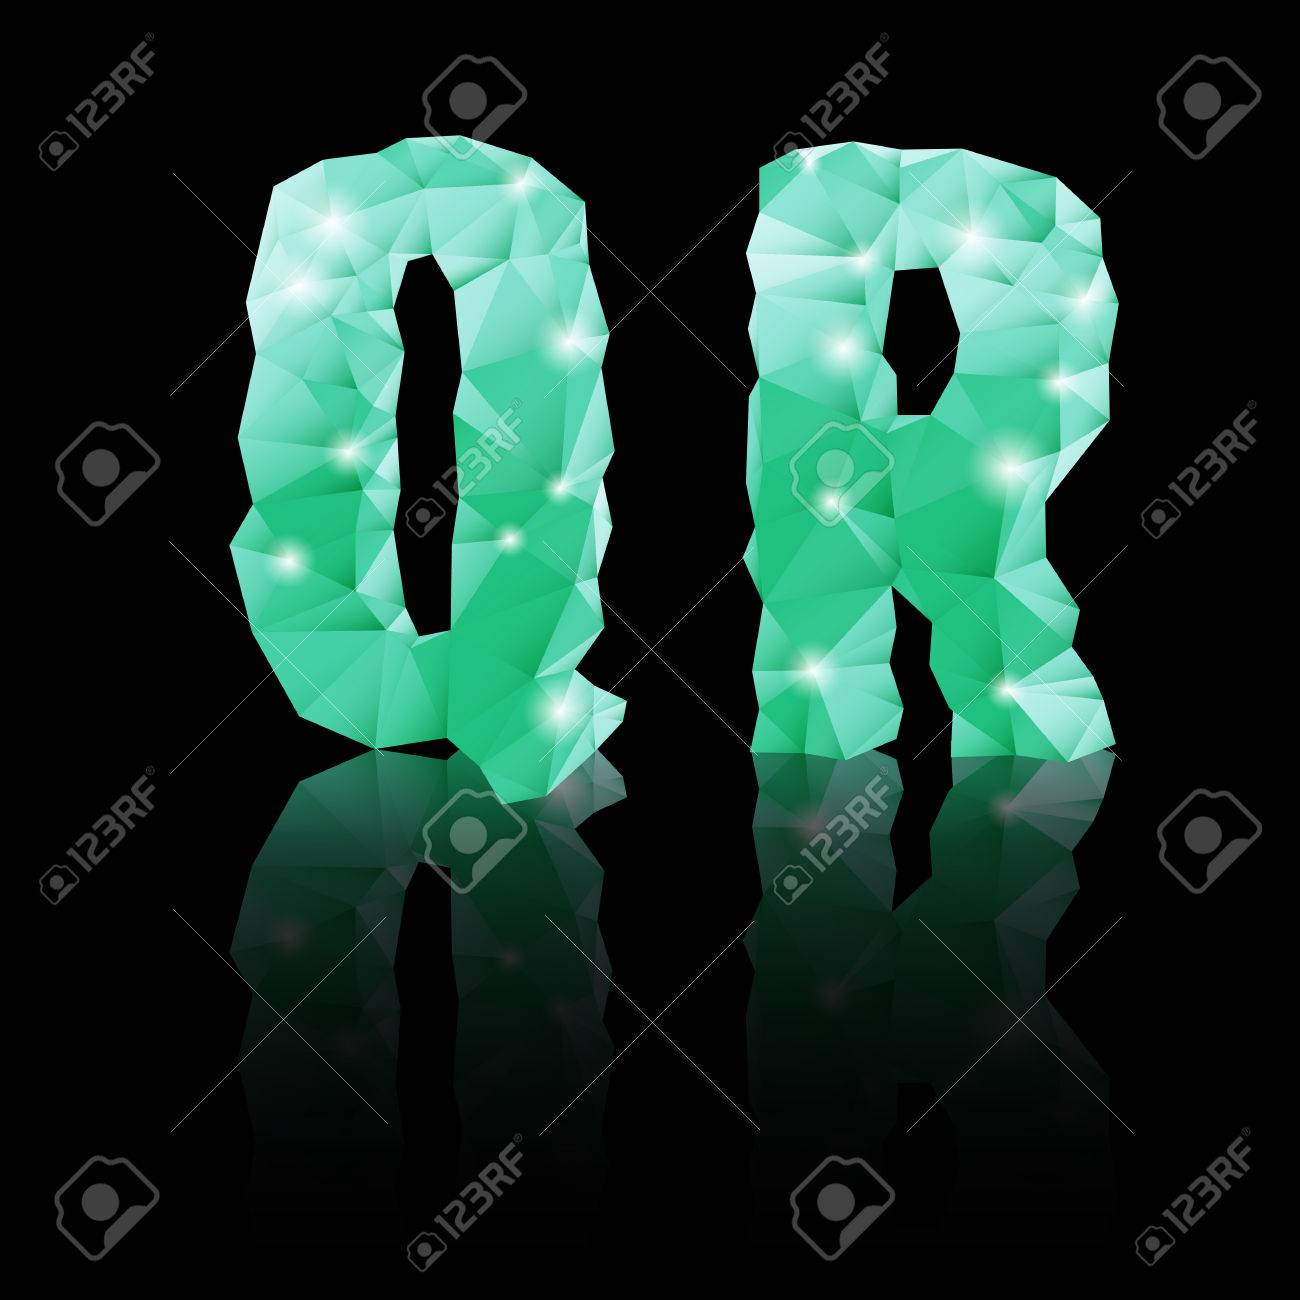 shiny emerald green polygonal font with reflection on black background crystal style q and r